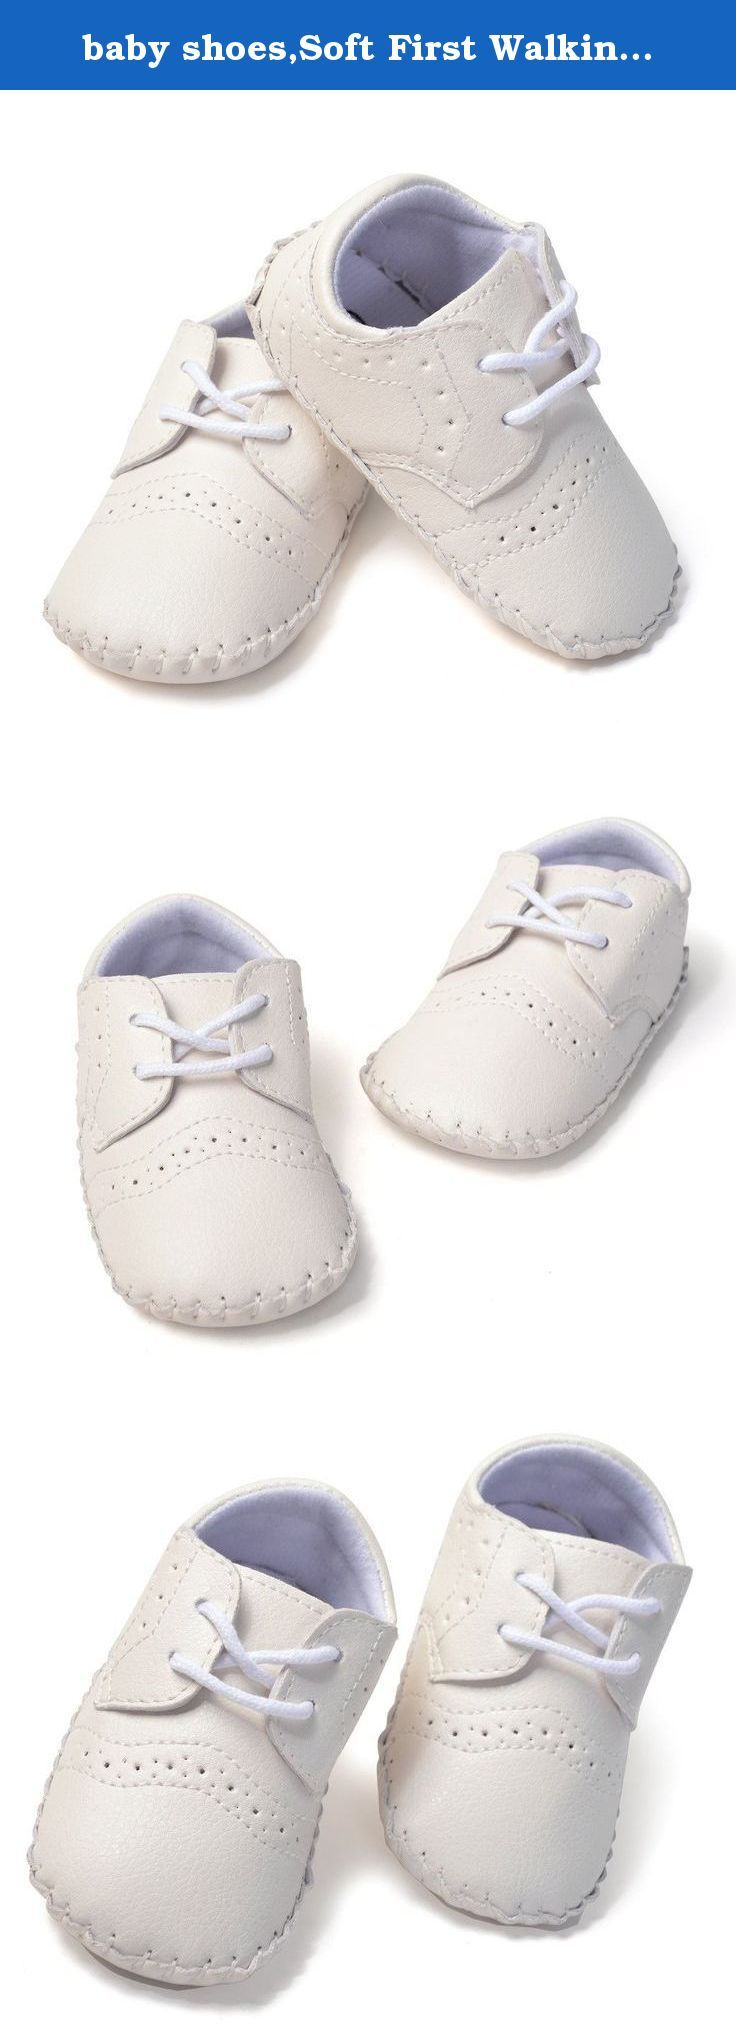 baby shoes,Soft First Walking Shoes,Ctshow Infant/Toddler Baby ...